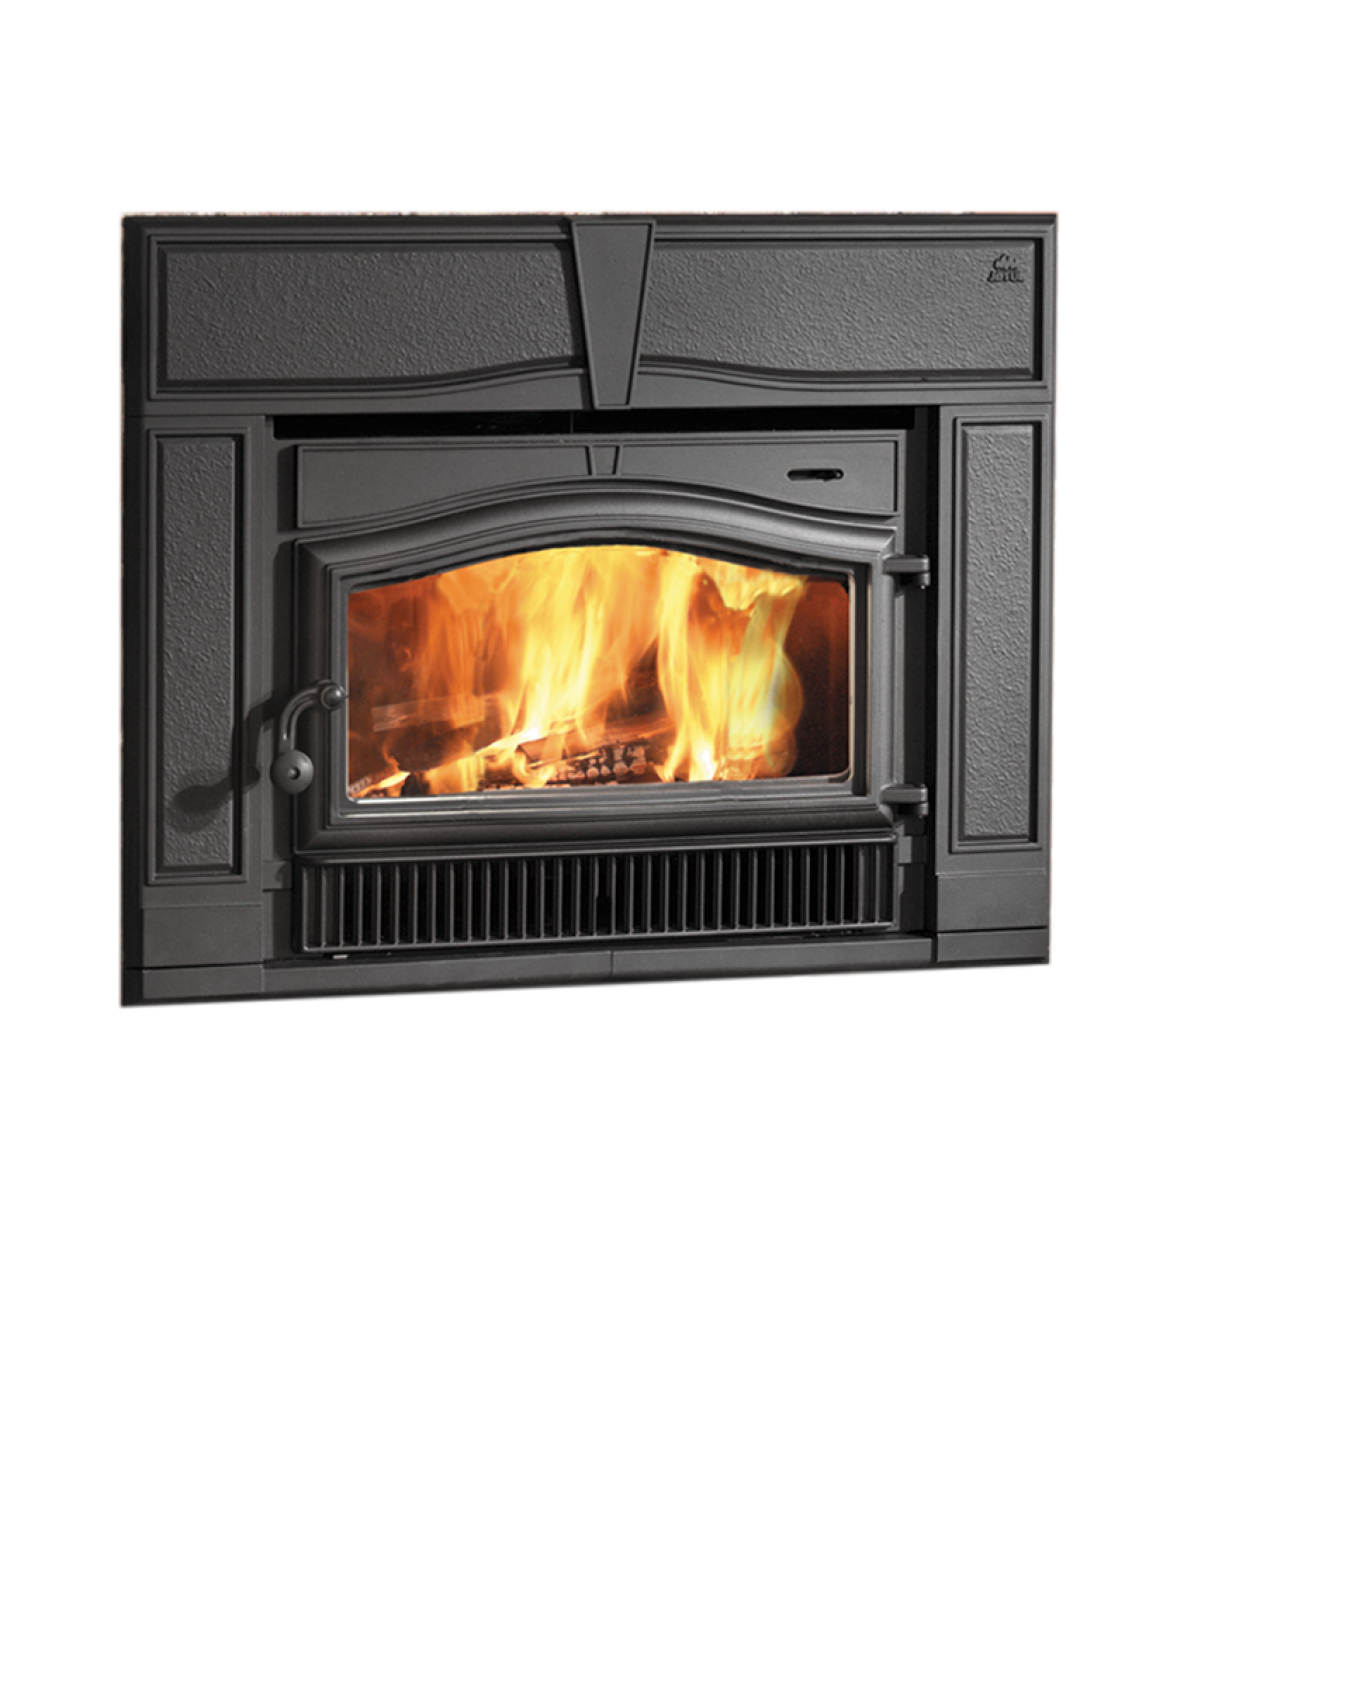 Fireplace clipart stone fireplace. Bbq center images contemporary